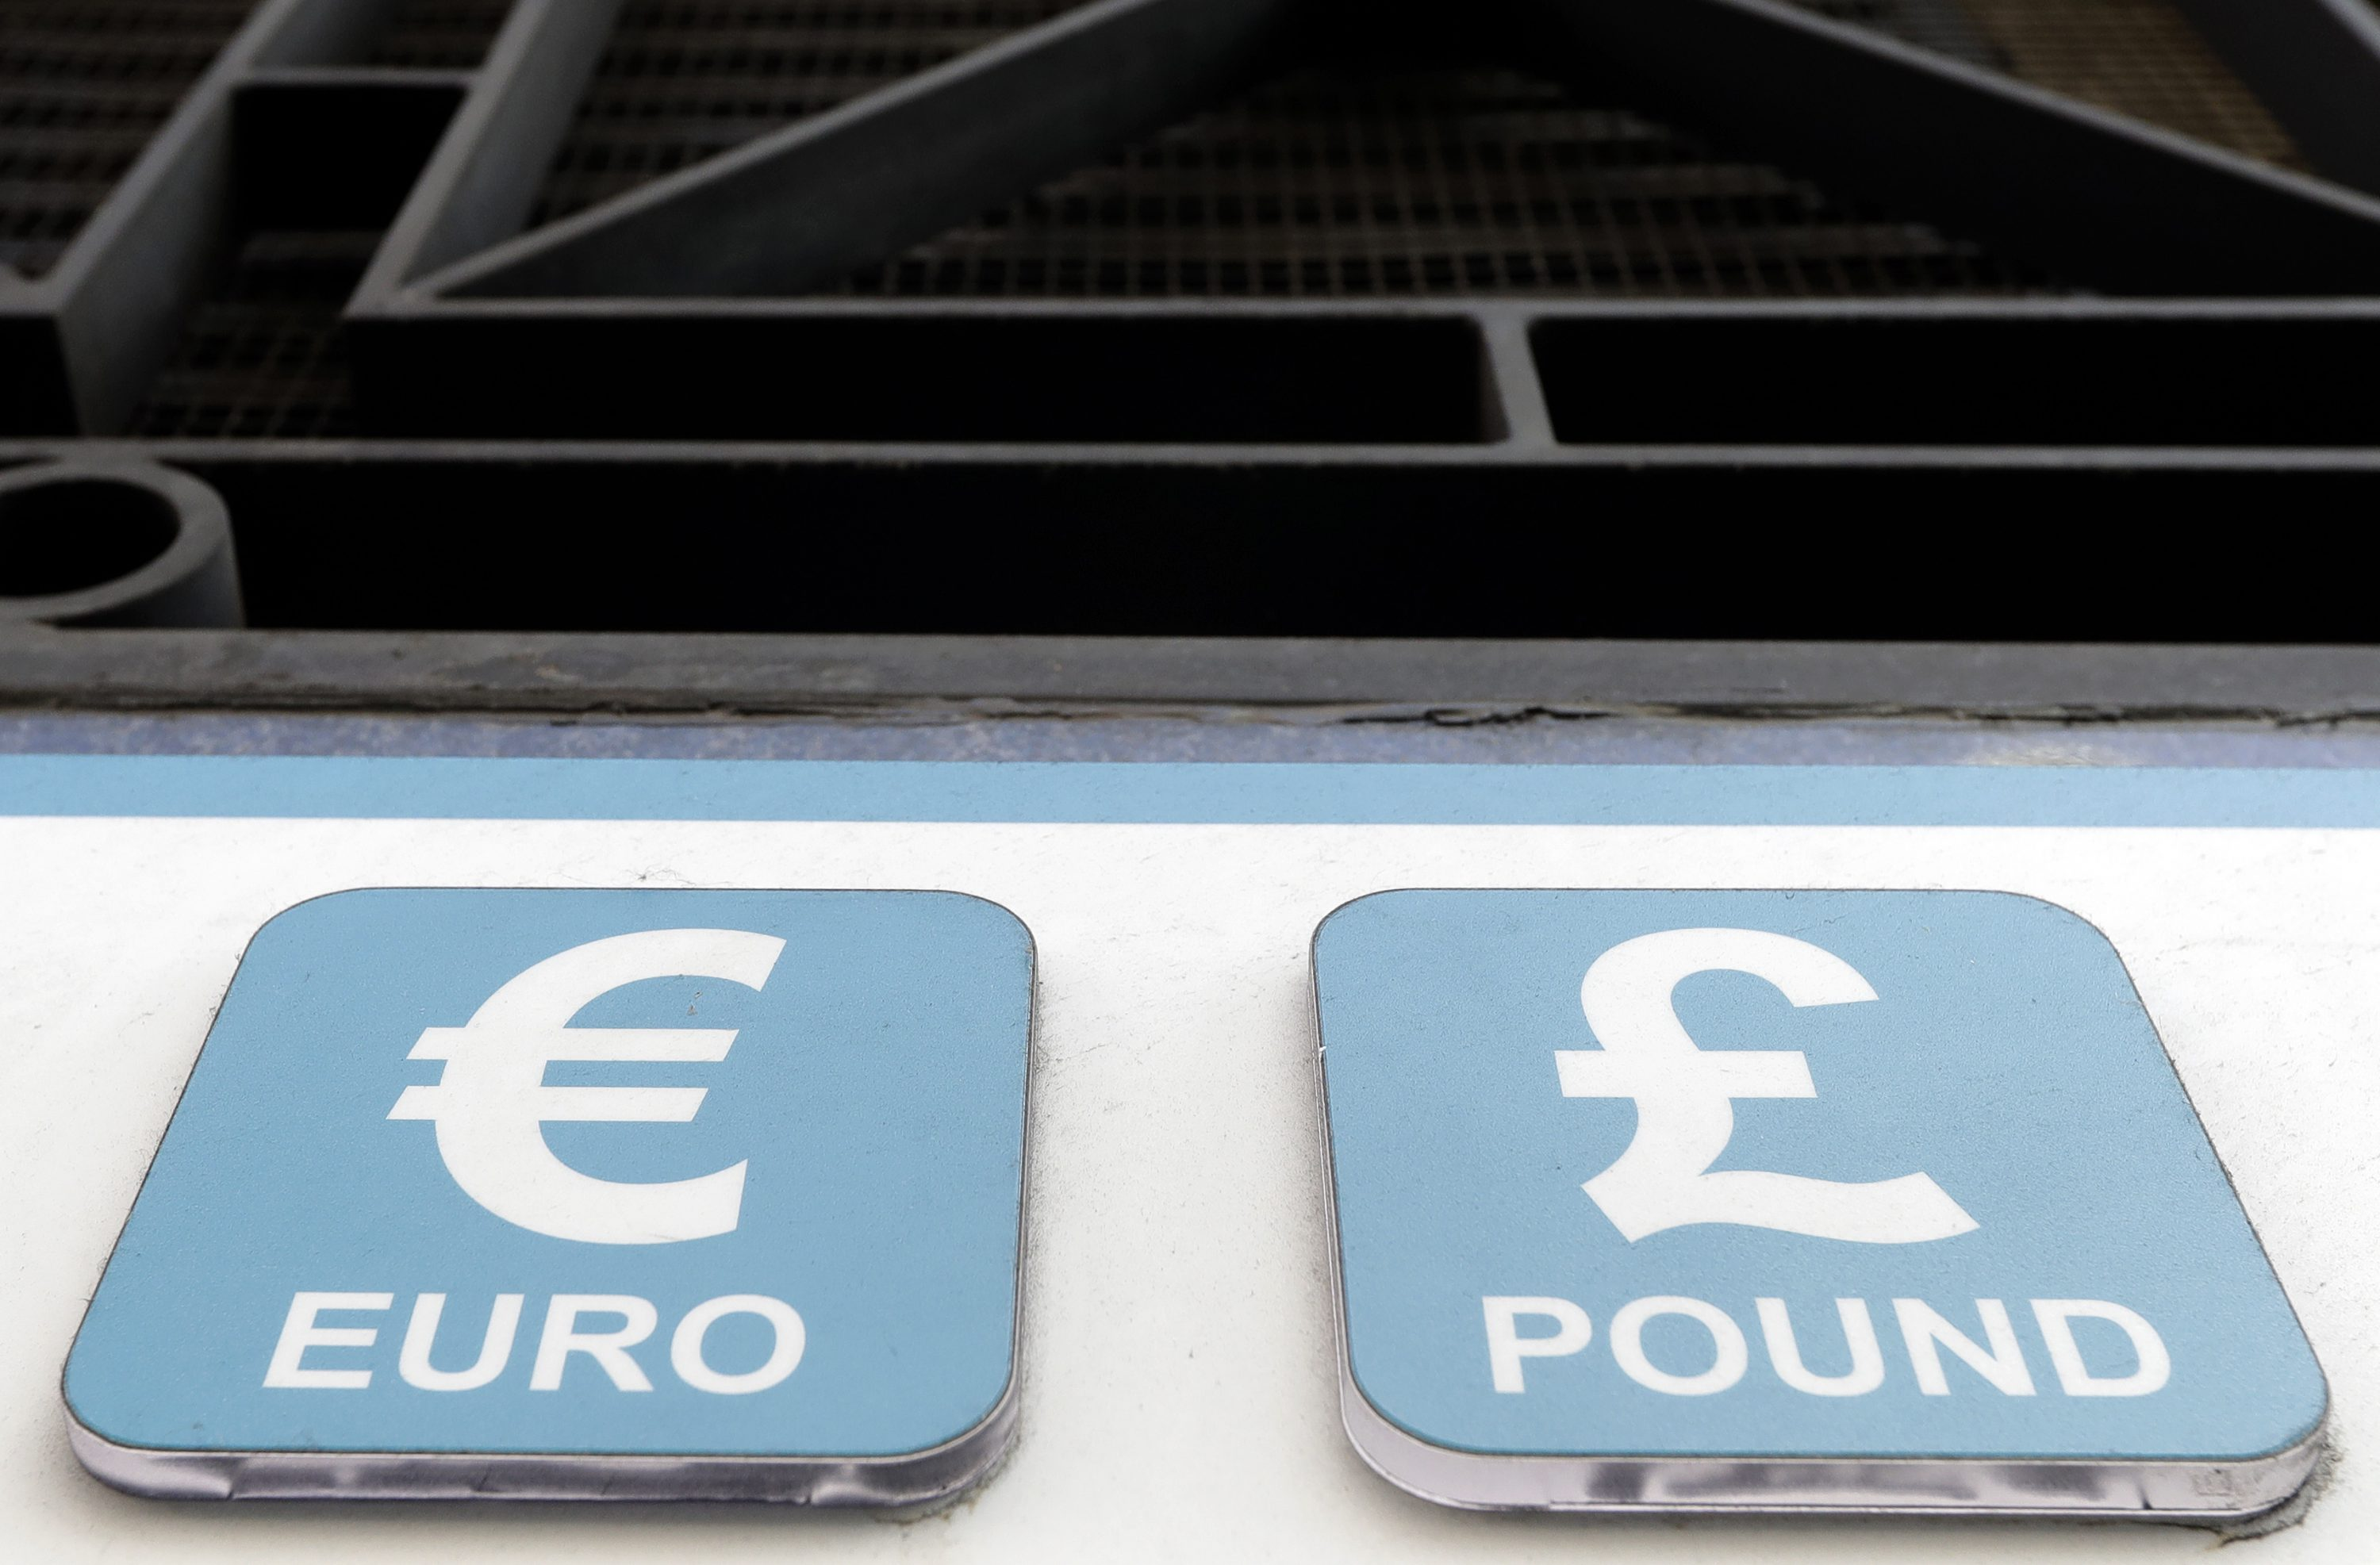 Pound and Euro signs are seen above a cashpoint in London, Tuesday, Oct. 4, 2016. The British pound has hit a 31-year low against the dollar amid concern the country is willing to break away definitively from the European Union's common market.